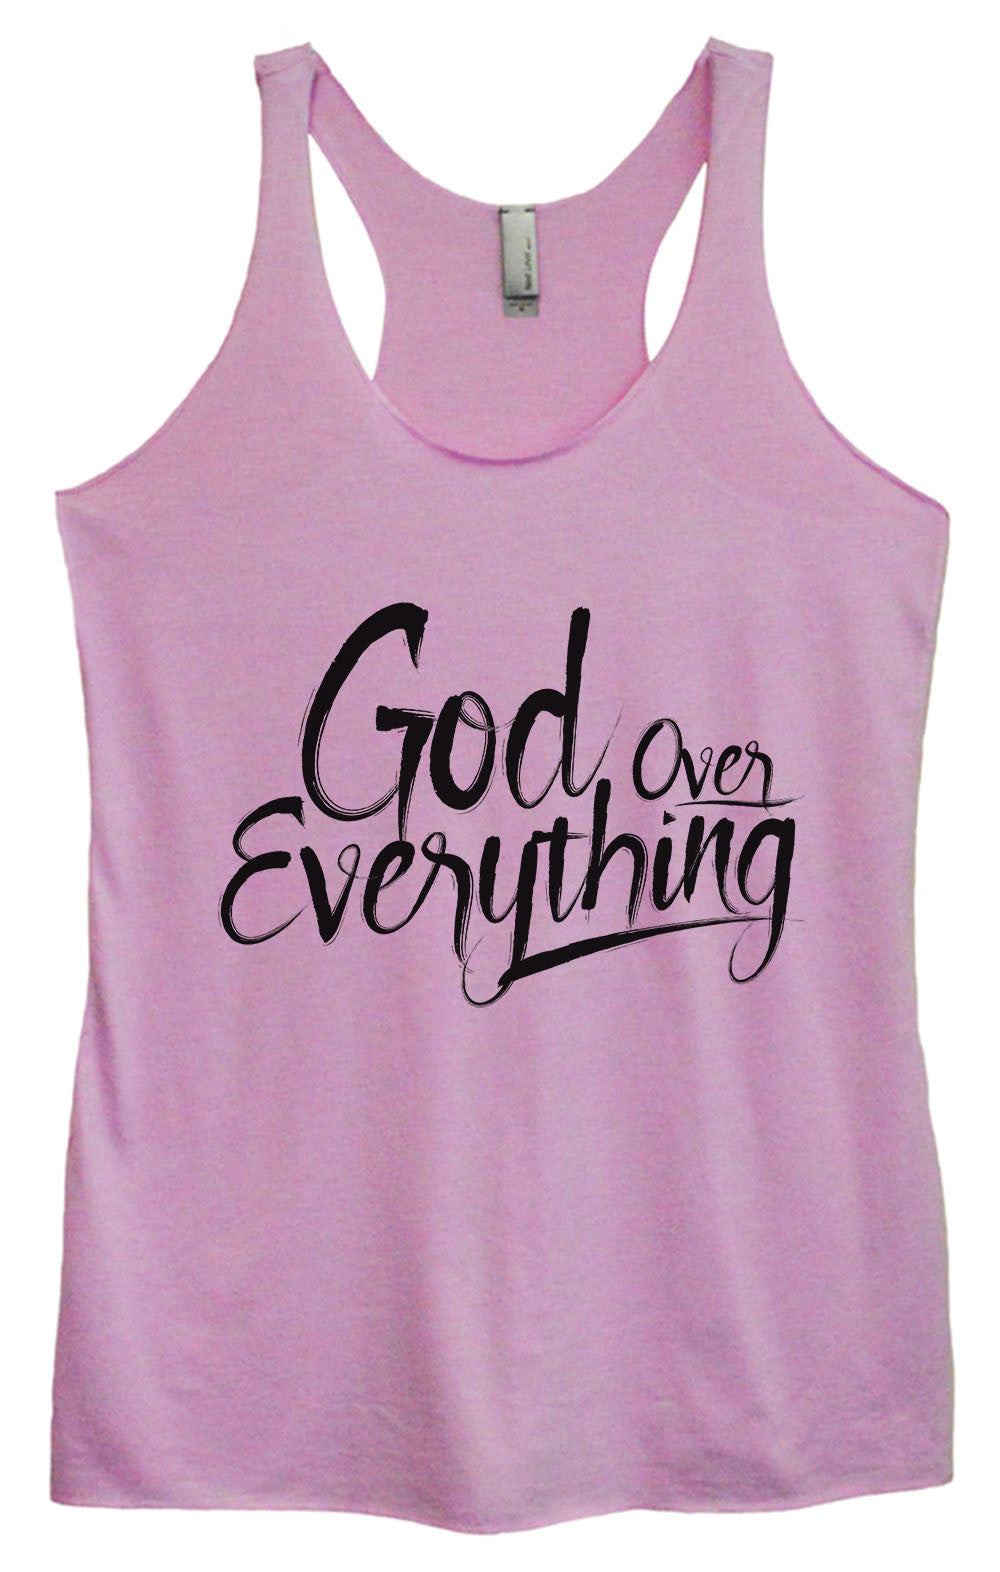 Womens Fashion Triblend Tank Top - God Everything Over - Tri-1588 - Funny Shirts Tank Tops Burnouts and Triblends  - 4